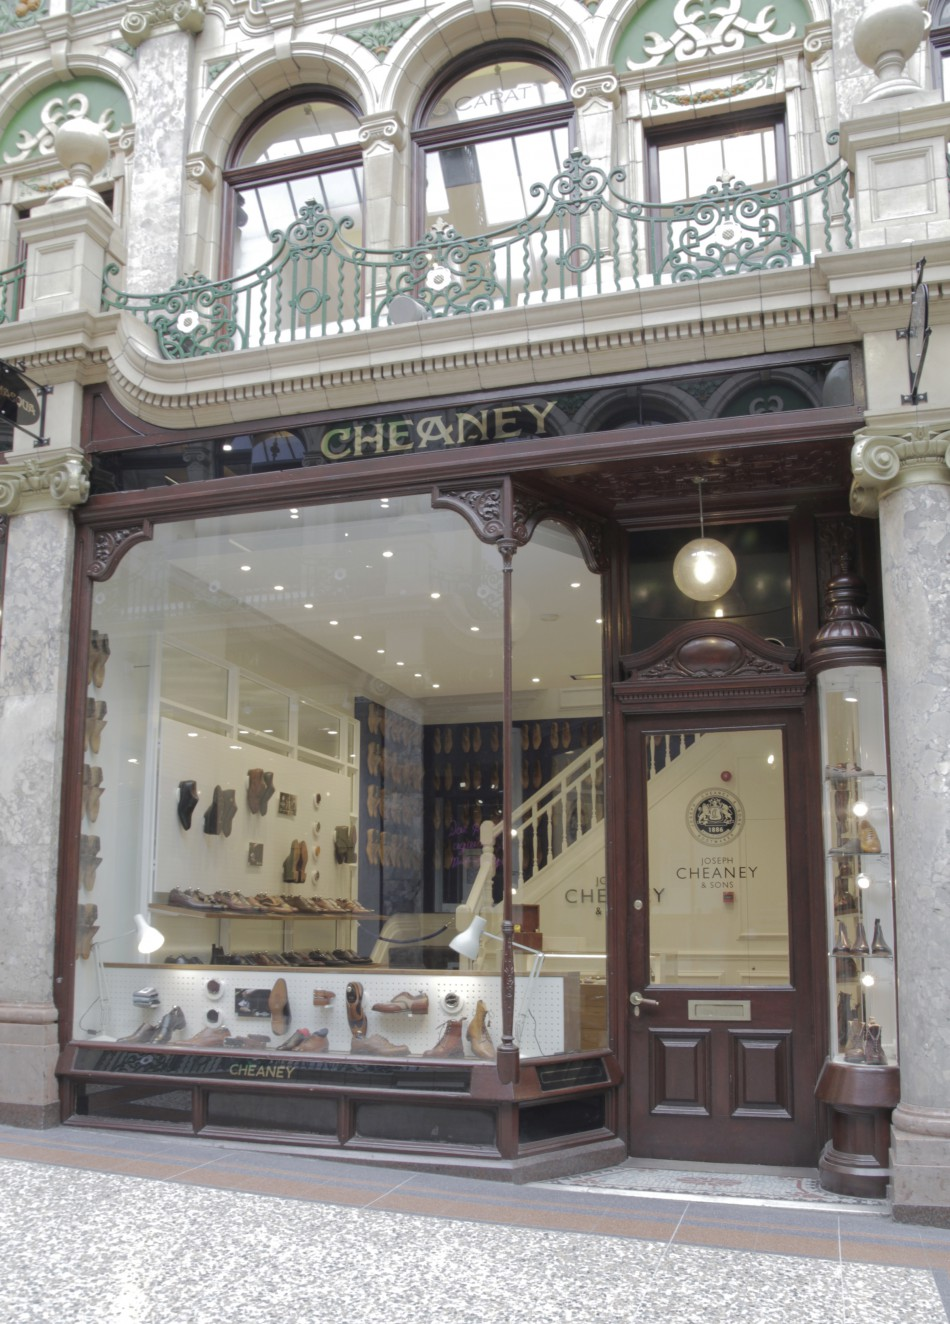 Cheaney open new store in Leeds